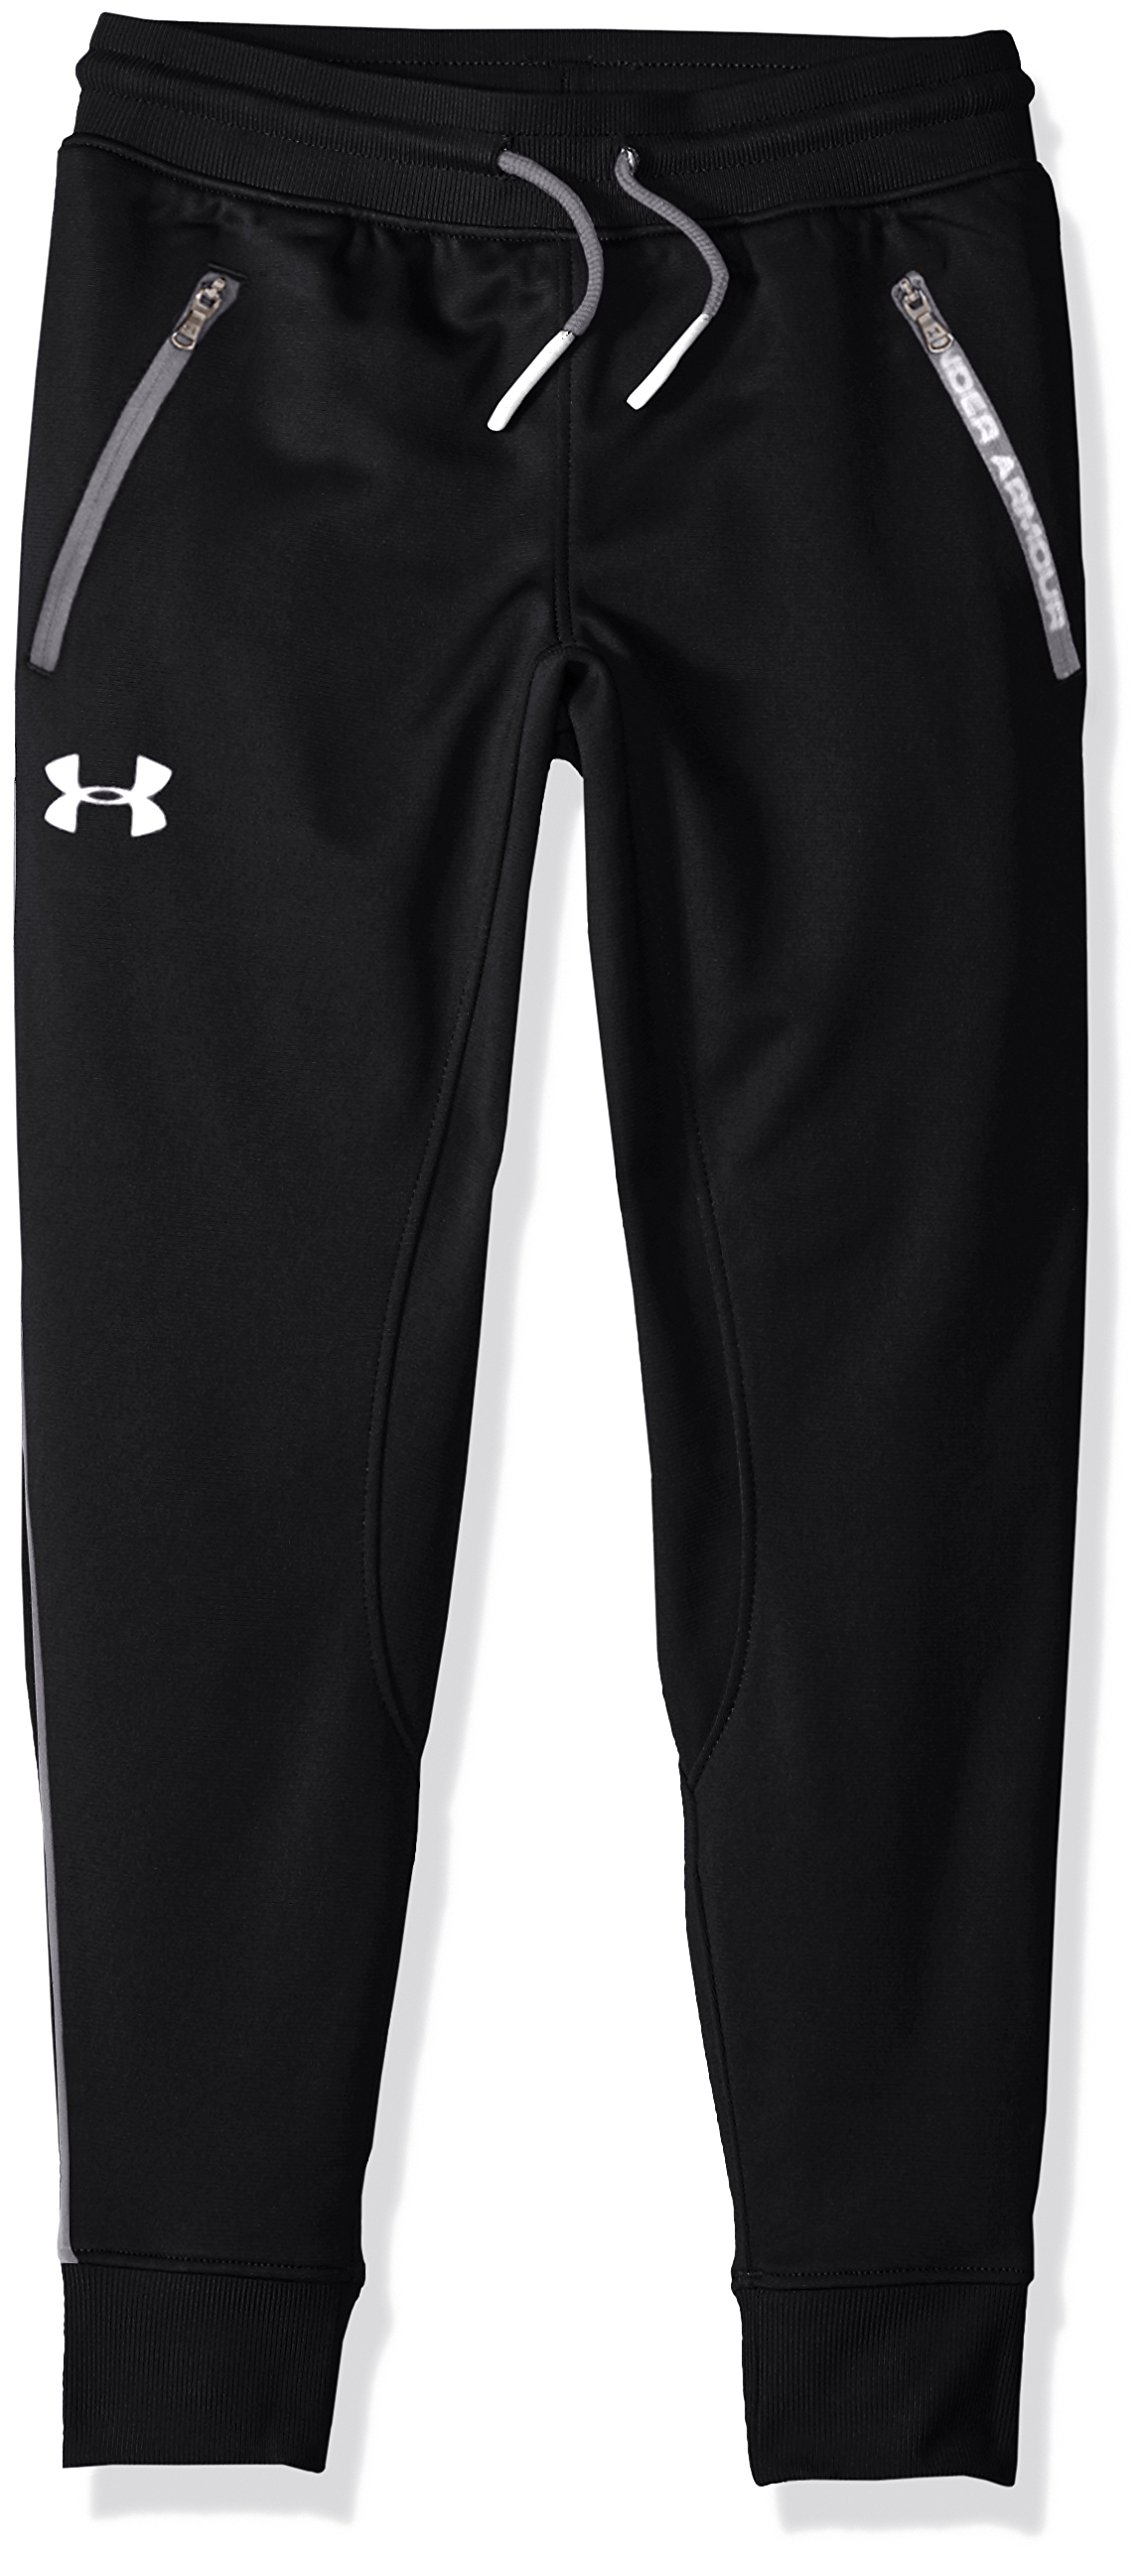 Under Armour Boys' Pennant Tapered Pant, Black/White, Youth Medium